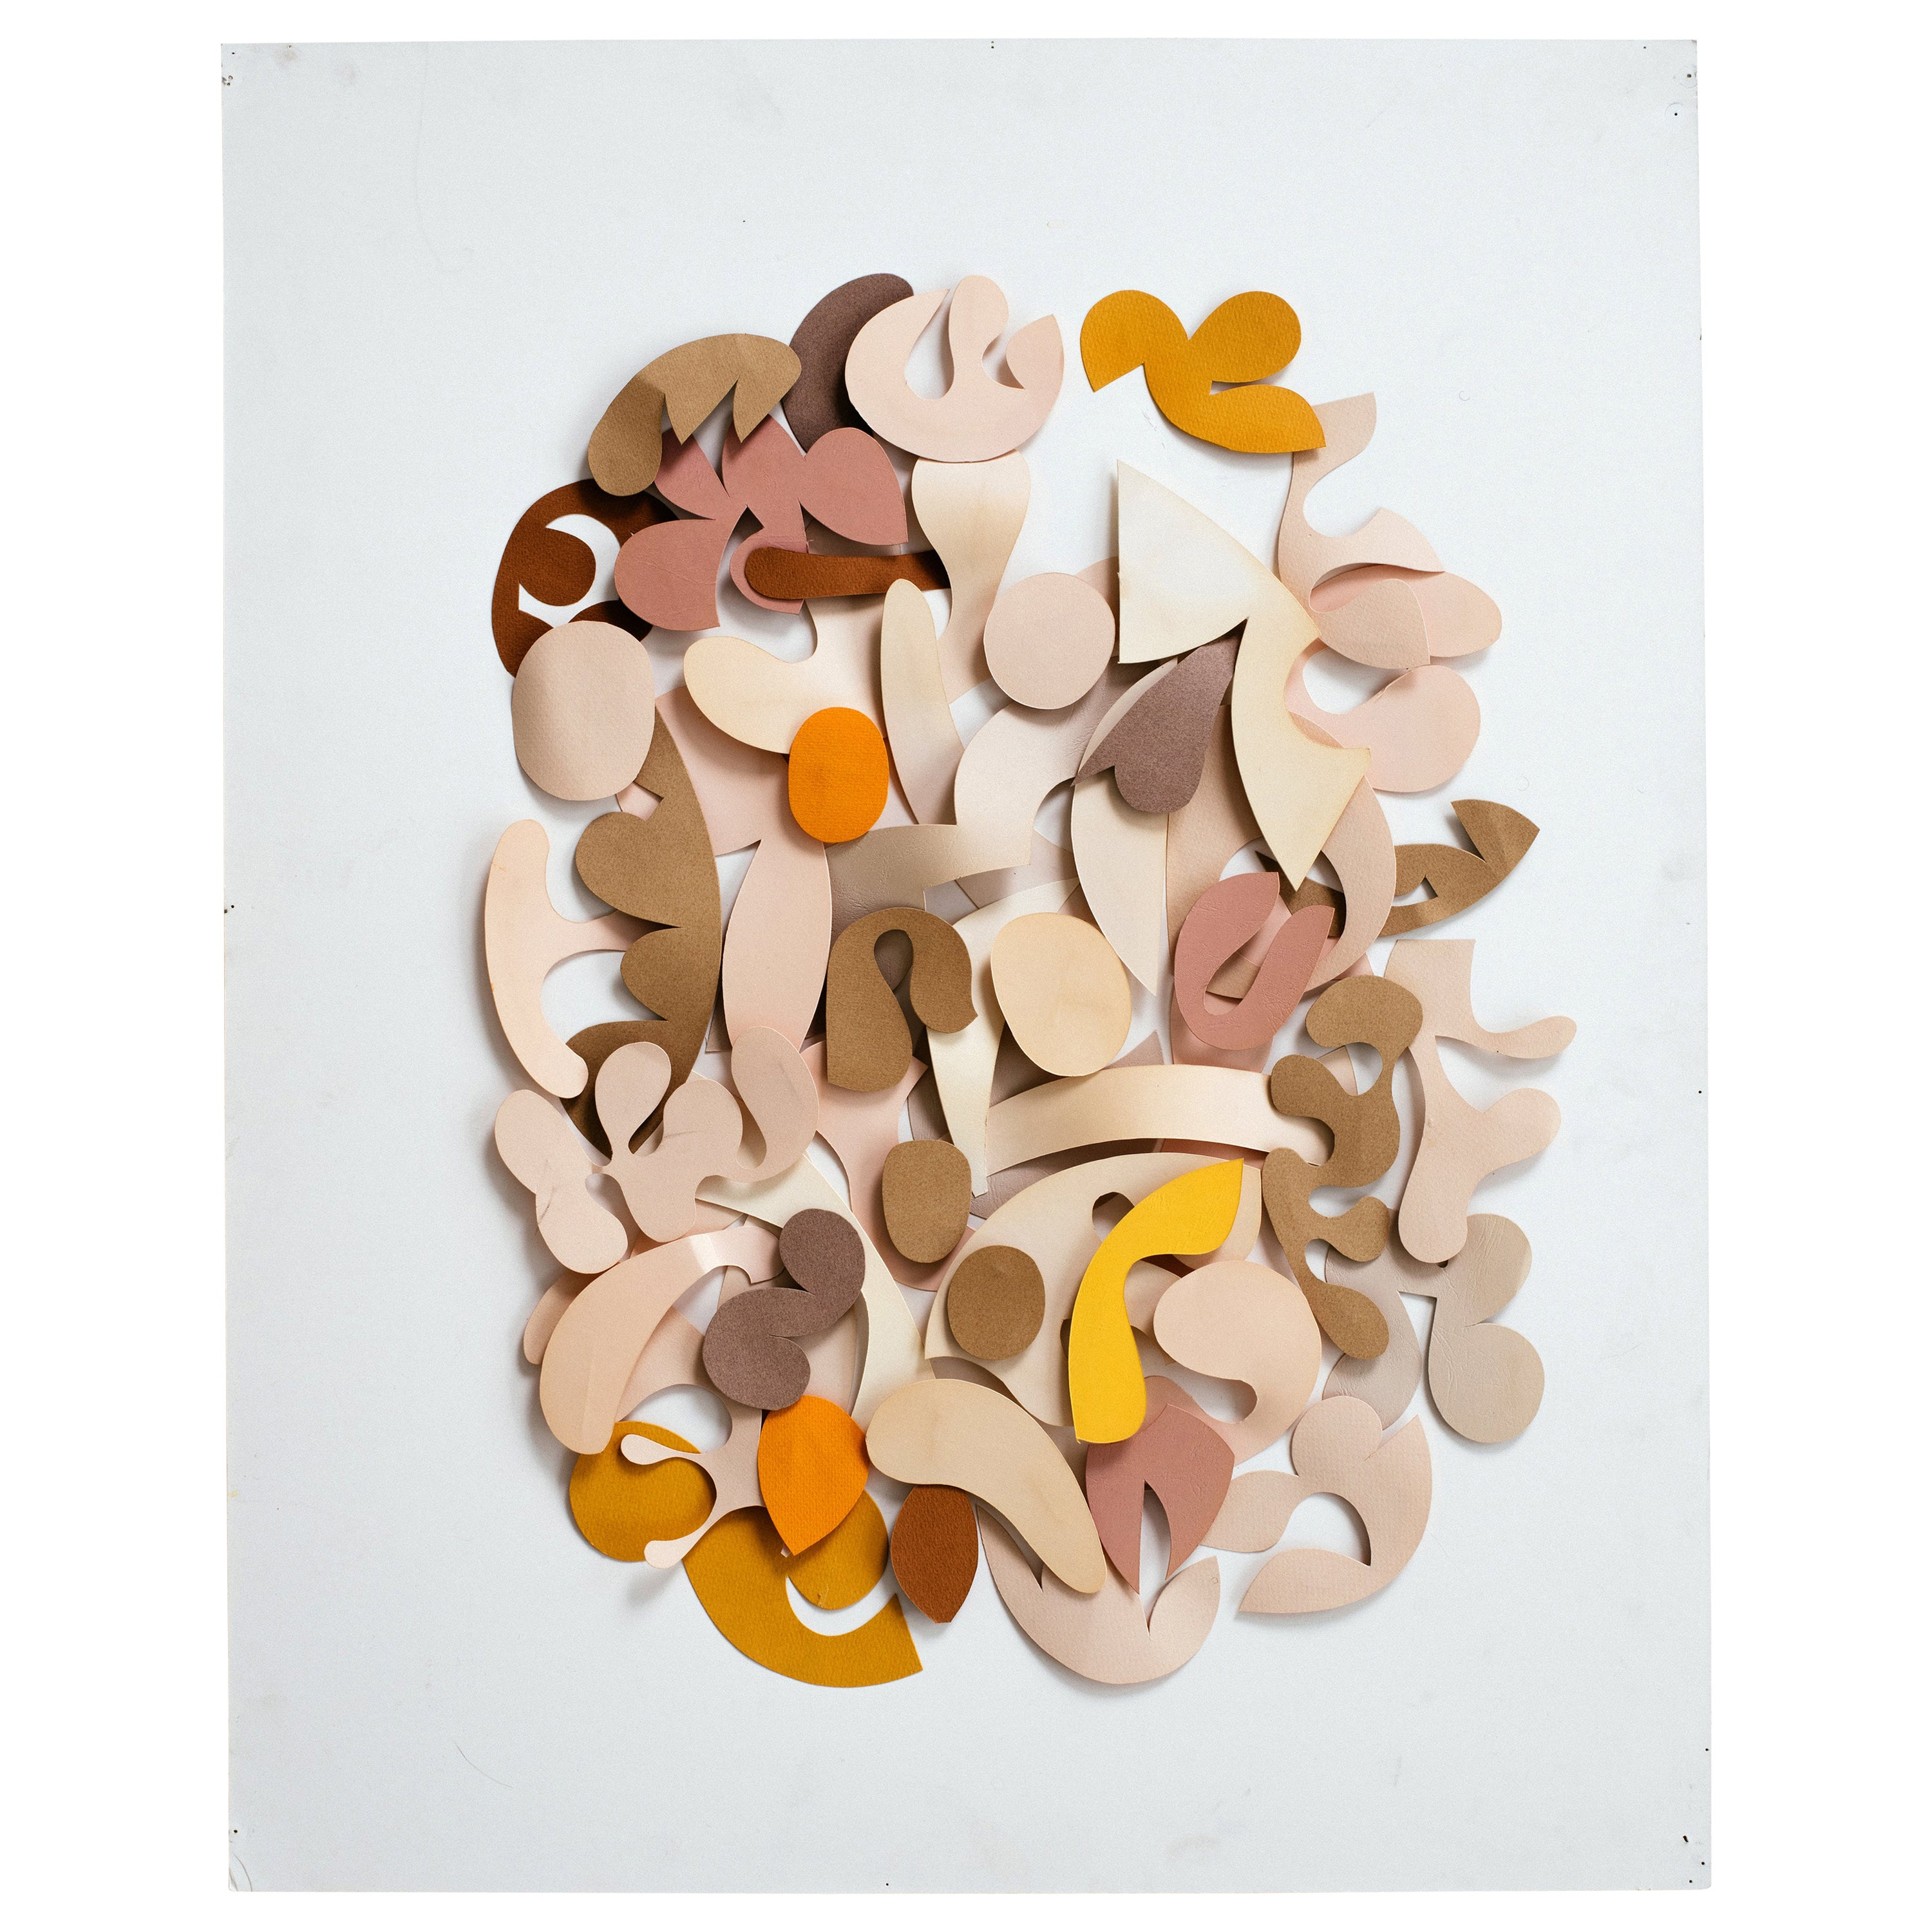 Irving Harper Untitled Paper Relief Wall Sculpture